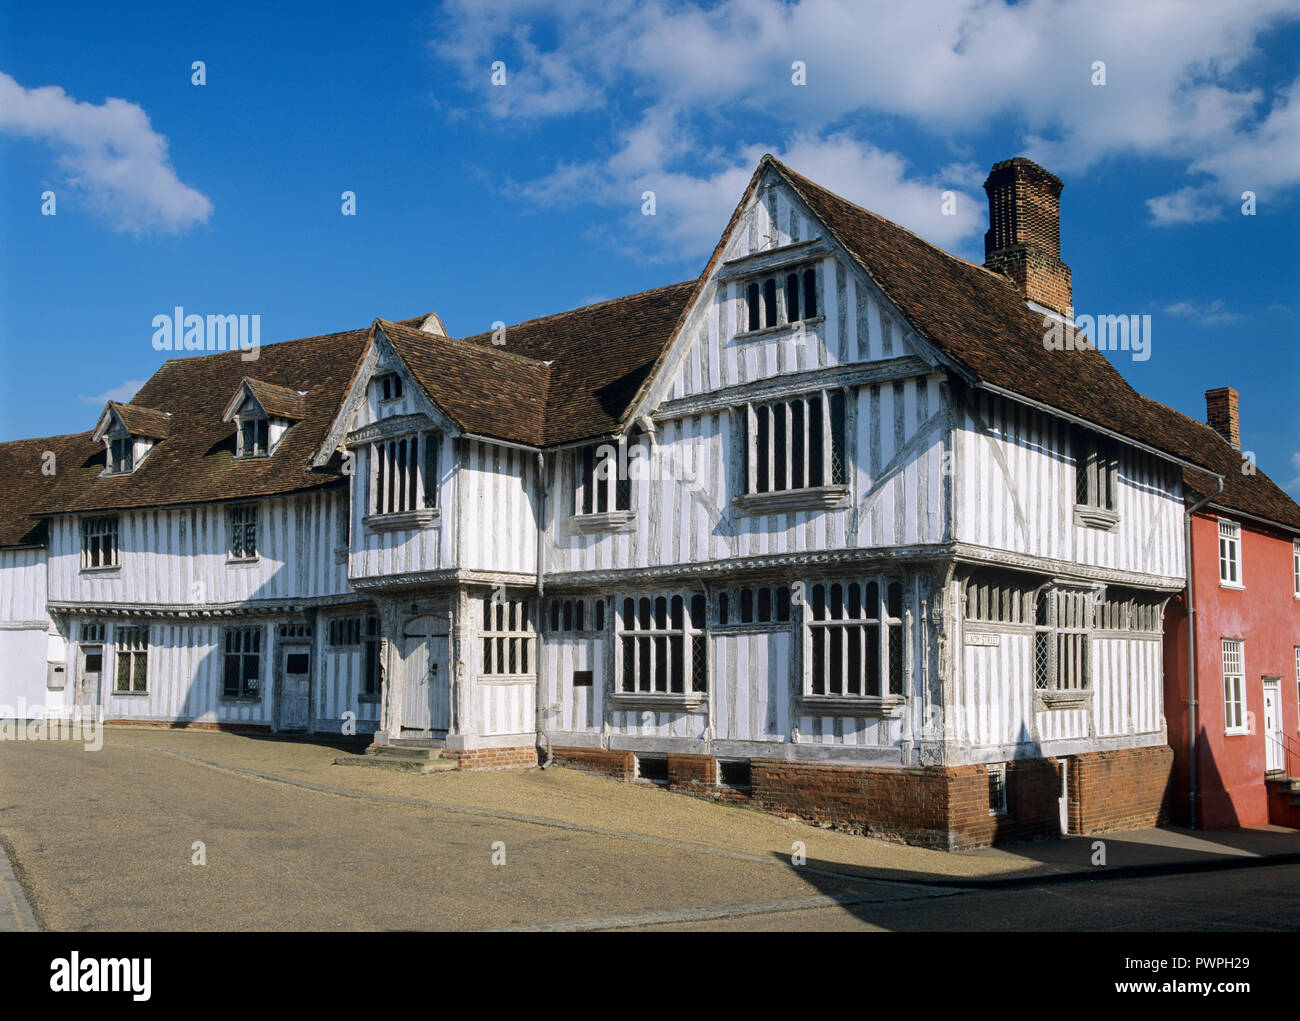 The Guildhall 16th century timber-framed building, Lavenham, Suffolk, England, United Kingdom, Europe - Stock Image